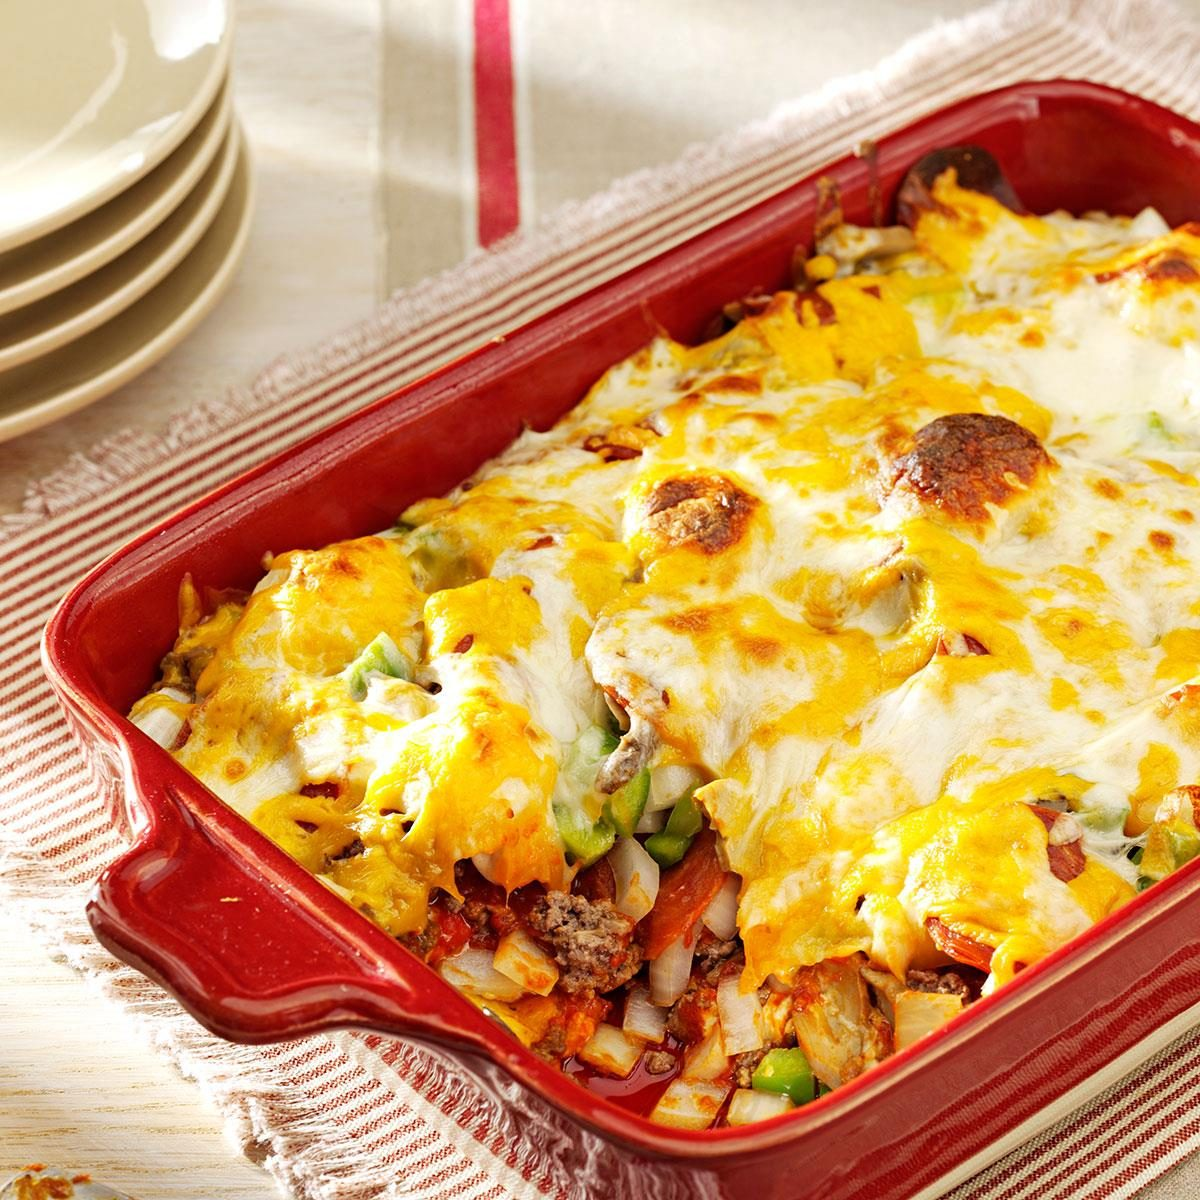 Biscuit Pizza Bake